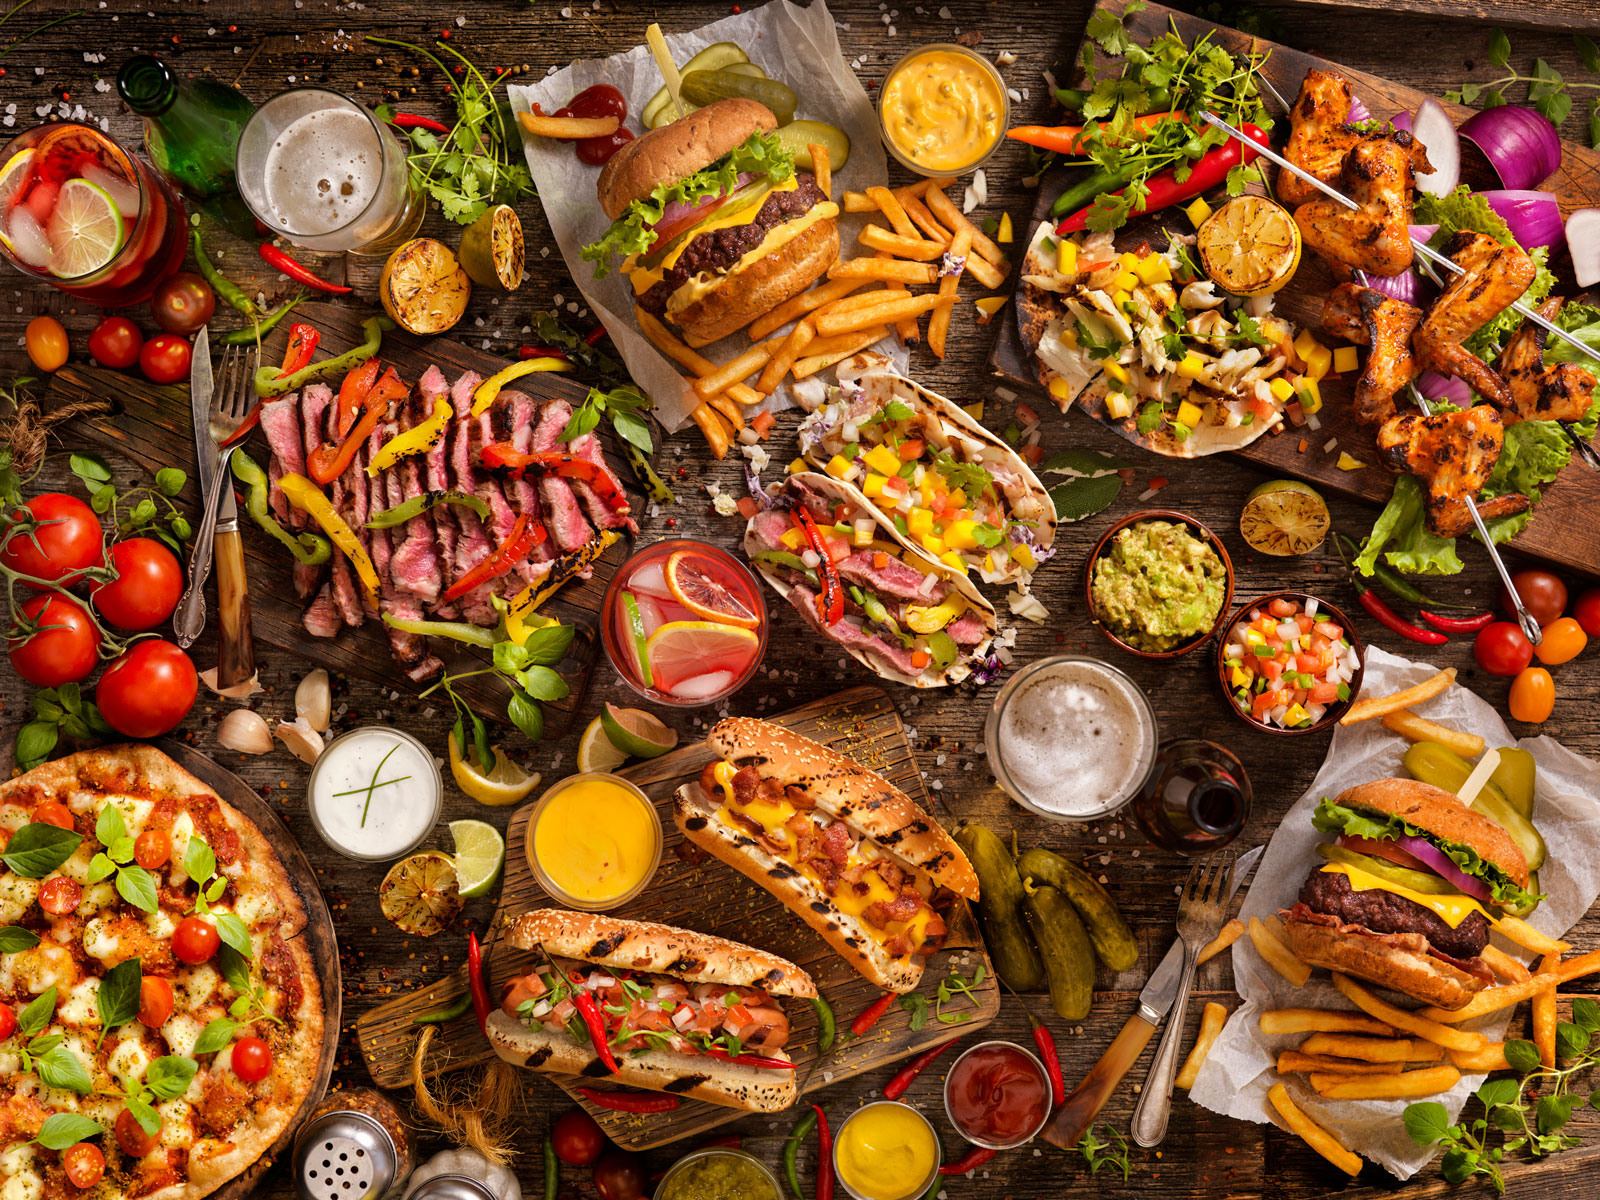 food-holidays-every-state-FT-BLOG0219.jpg